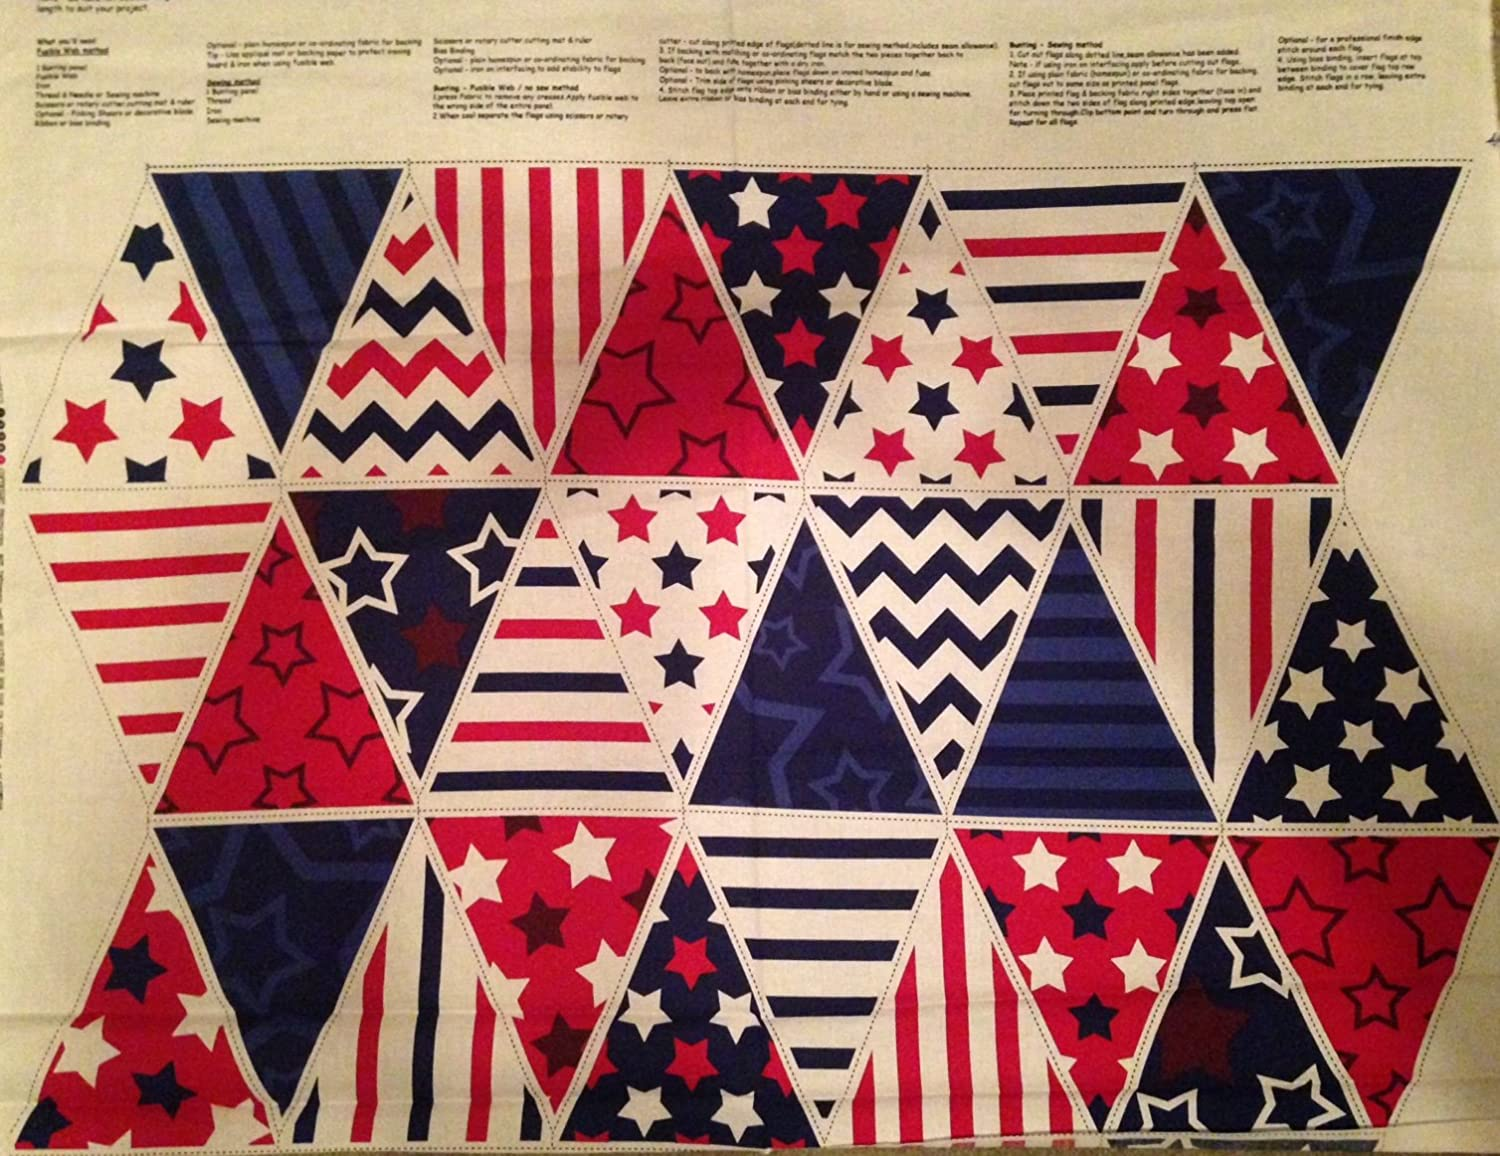 Patriot Ranking TOP13 Day Flags Bunting Cotton Licen - Panel 2021 model Fabric Officially